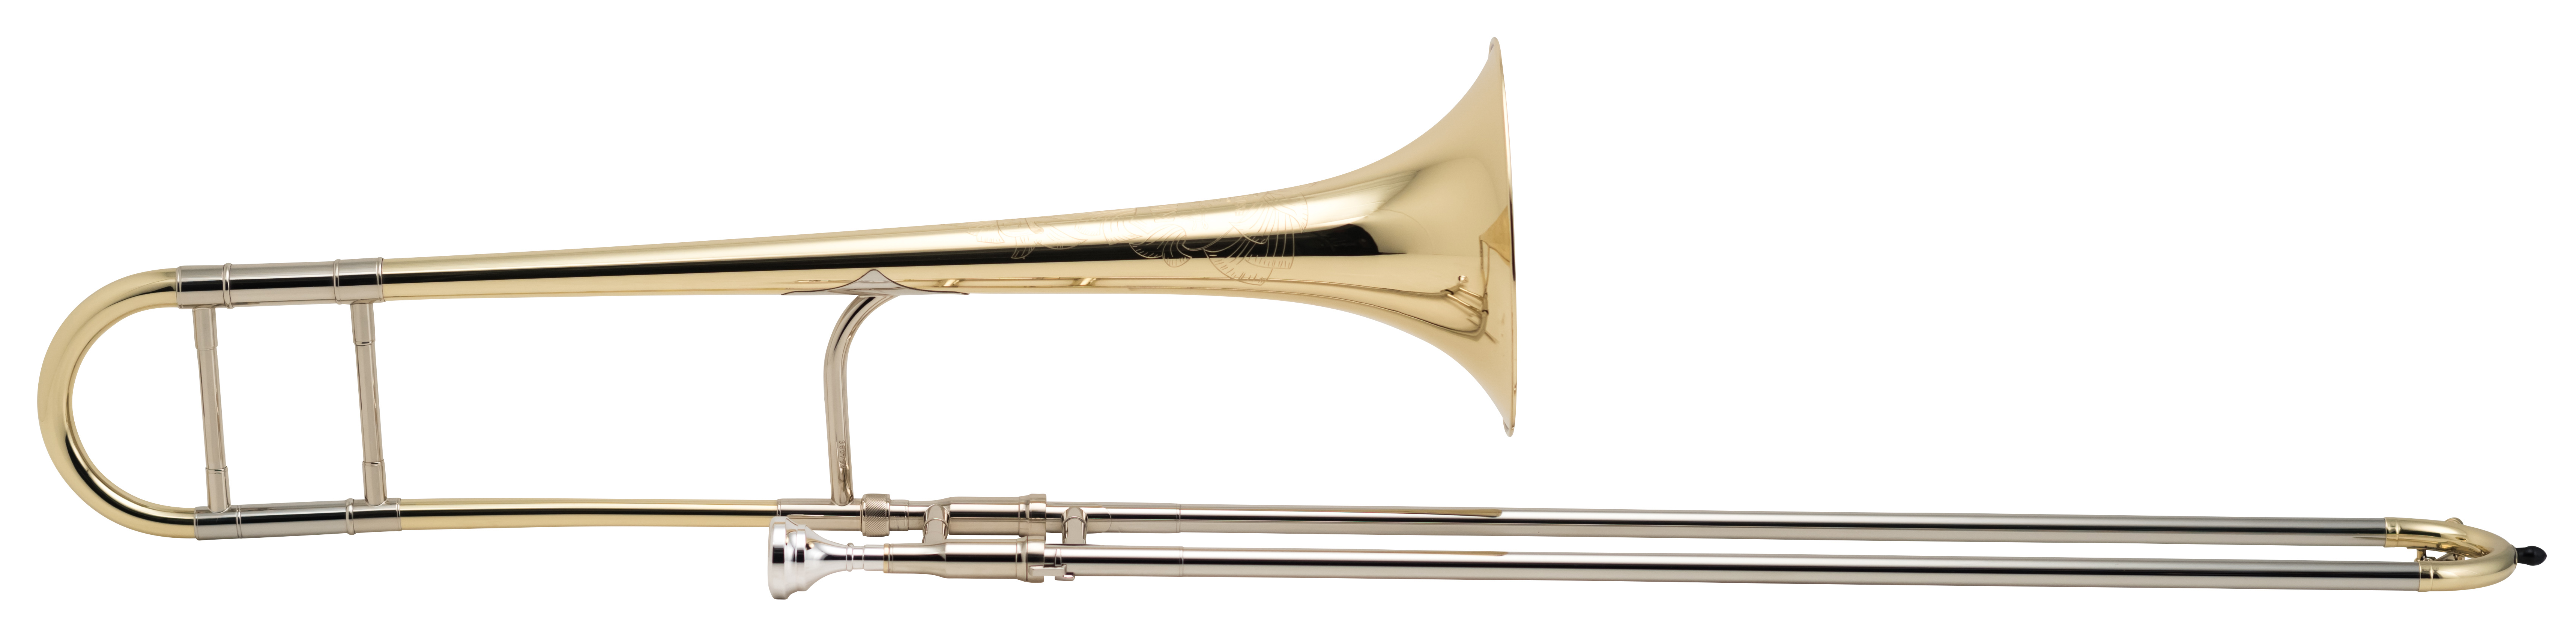 King Professional Model 2102L Tenor Trombone